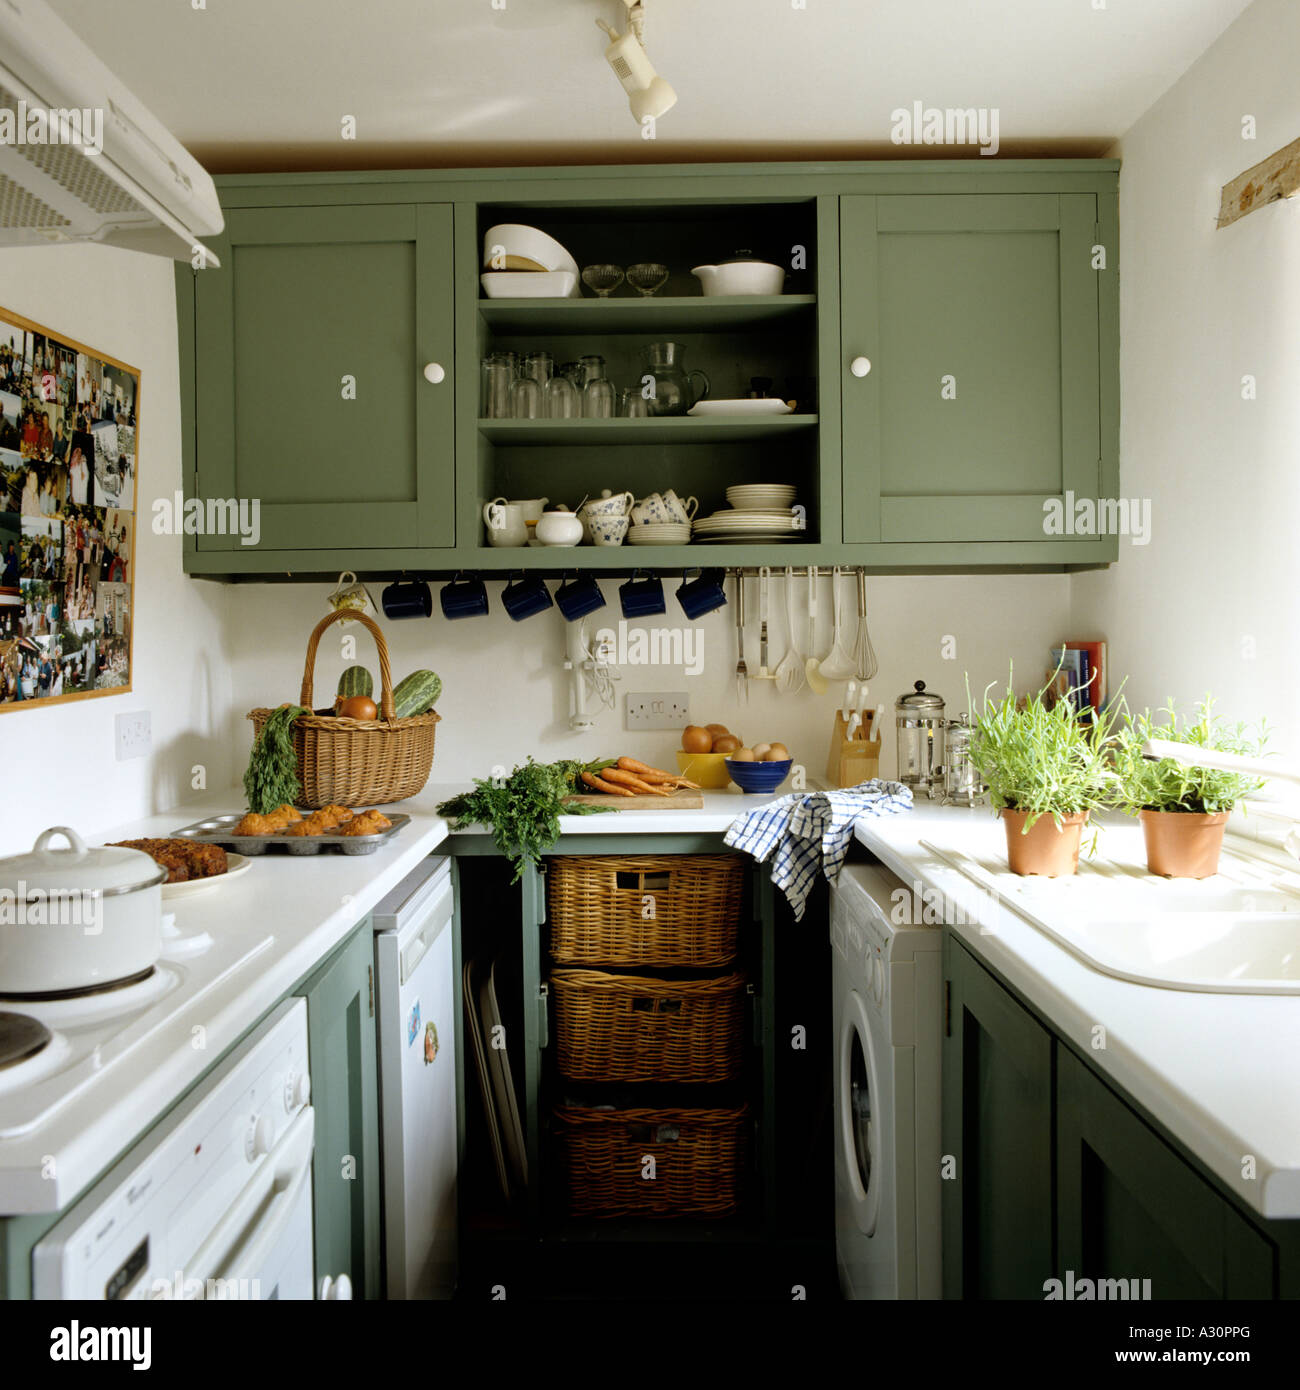 Green Painted Kitchen Galley: Green Painted Cupboard In Galley Kitchen, In English